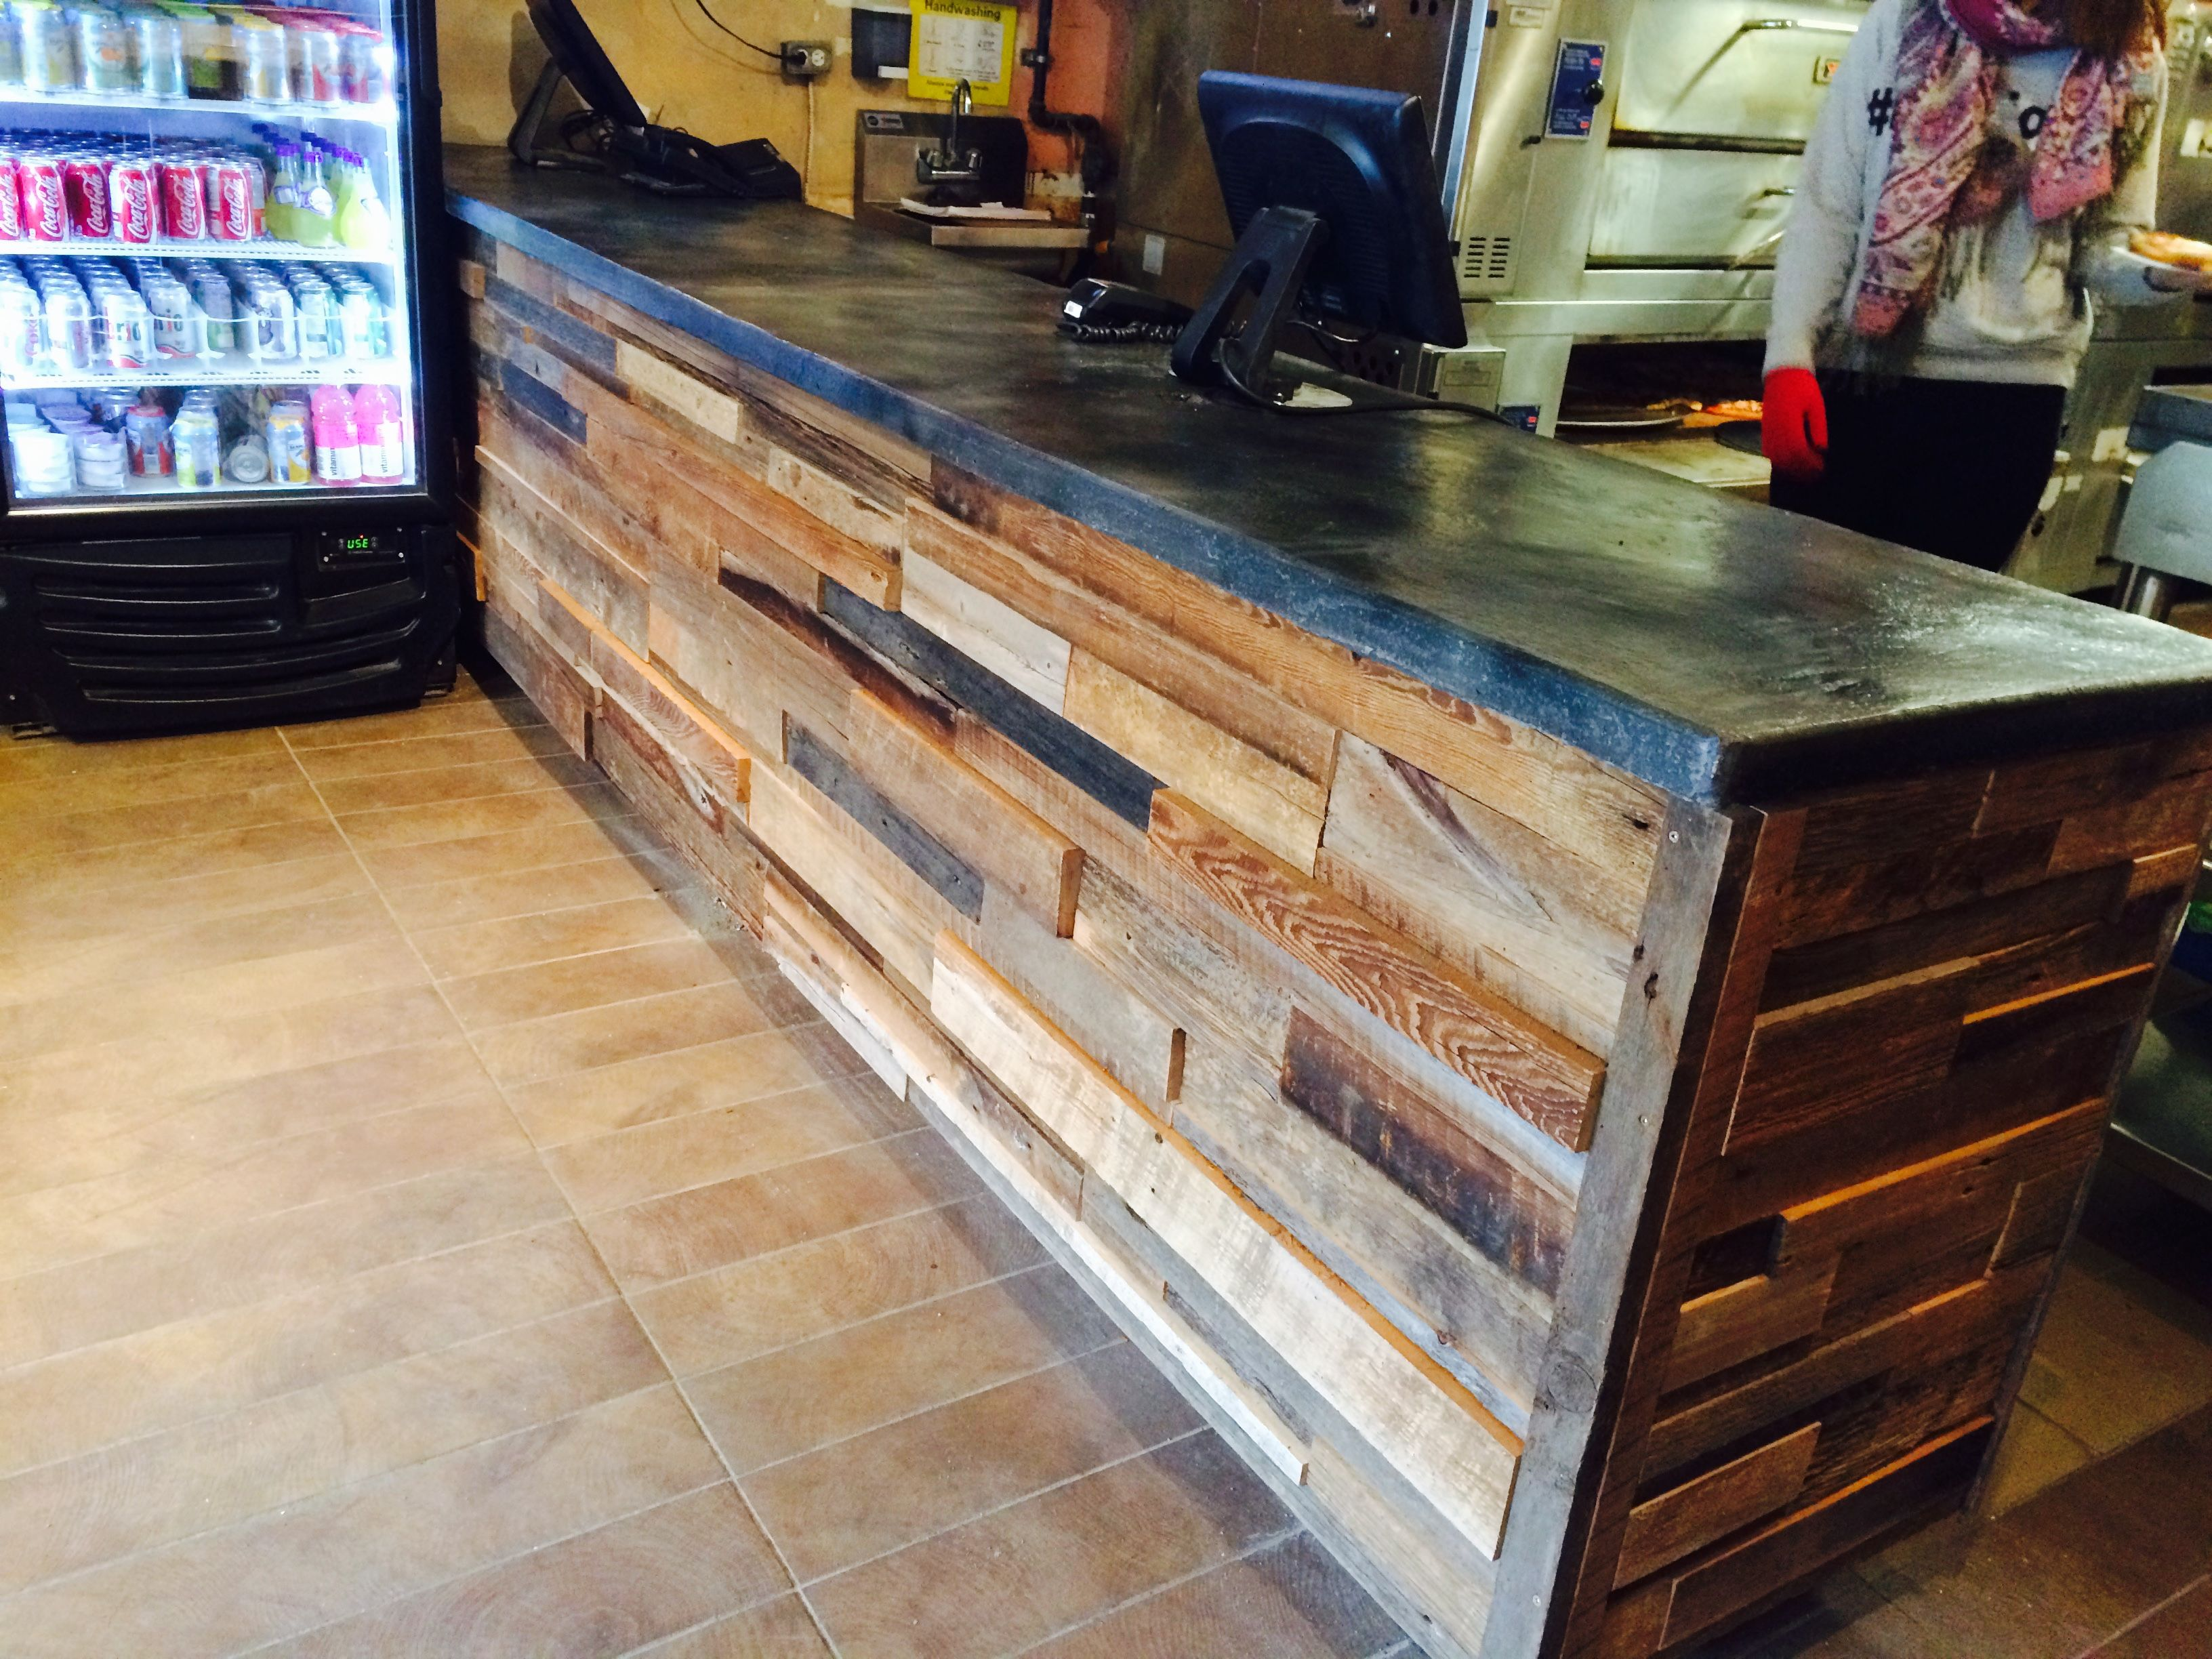 Reclaimed wood counter area for King Slice Pizza in